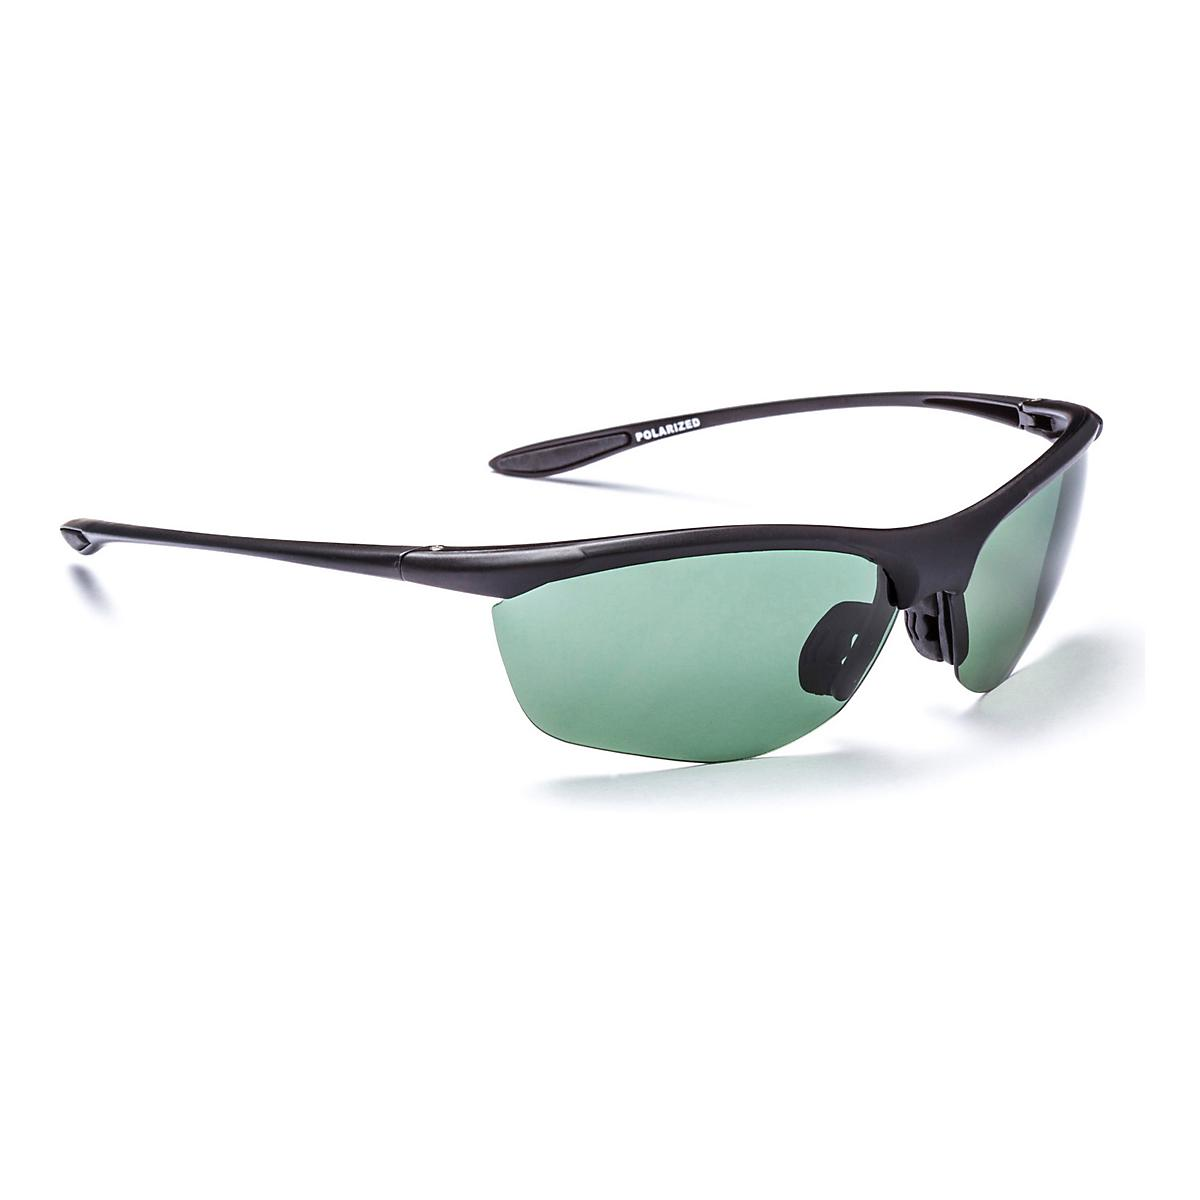 5b134ae68ec ONE Tightrope Polarized Sport Sunglasses at Road Runner Sports